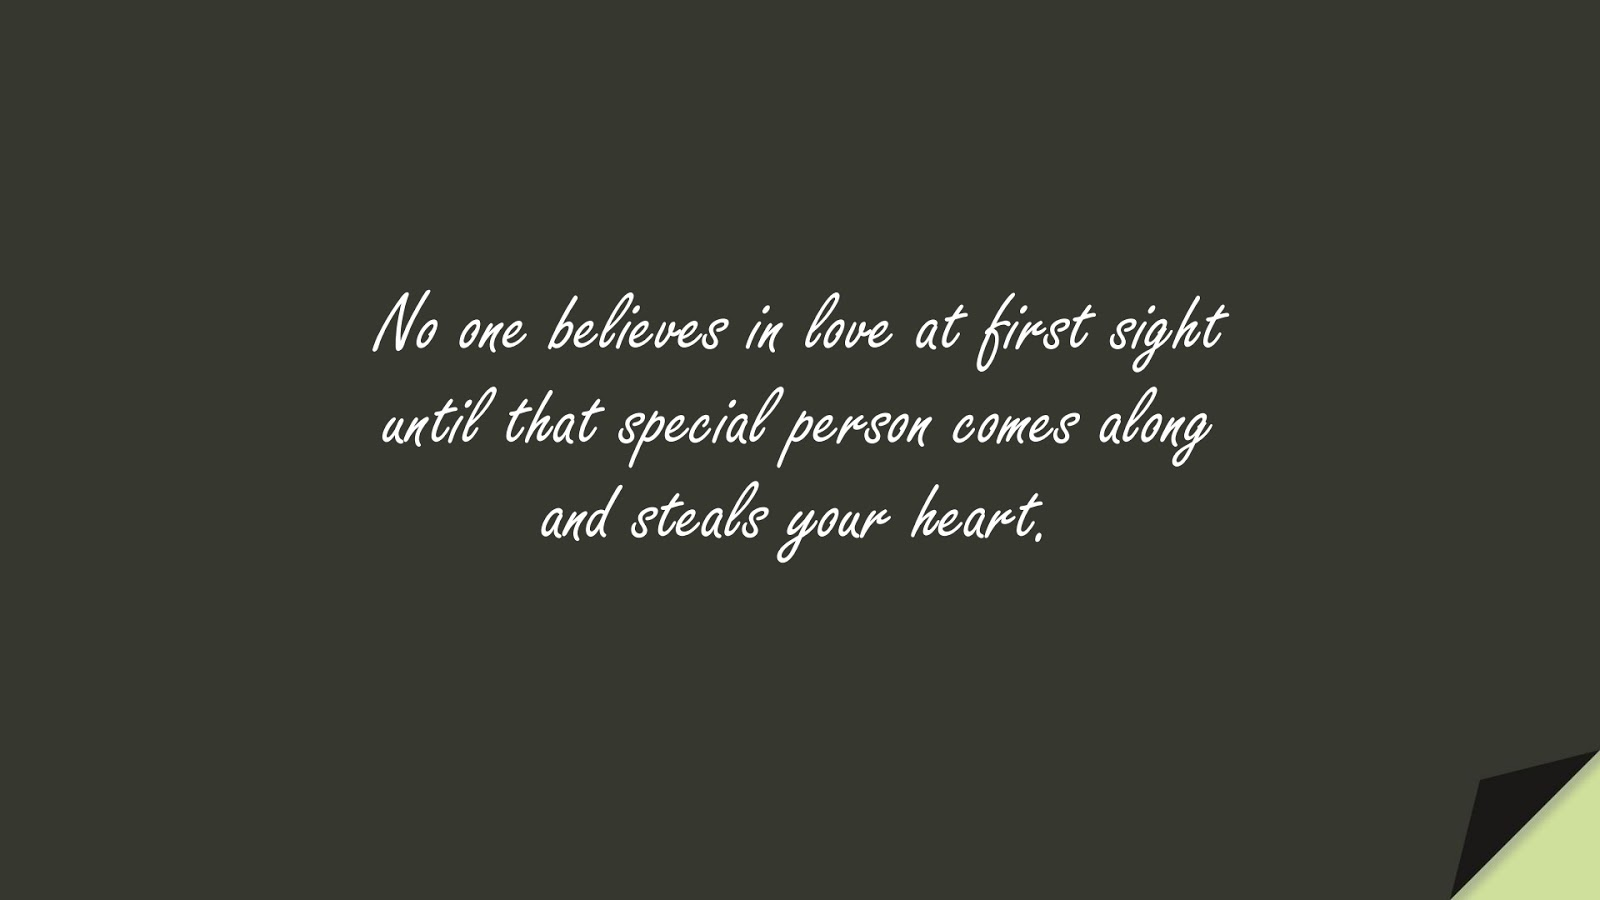 No one believes in love at first sight until that special person comes along and steals your heart.FALSE